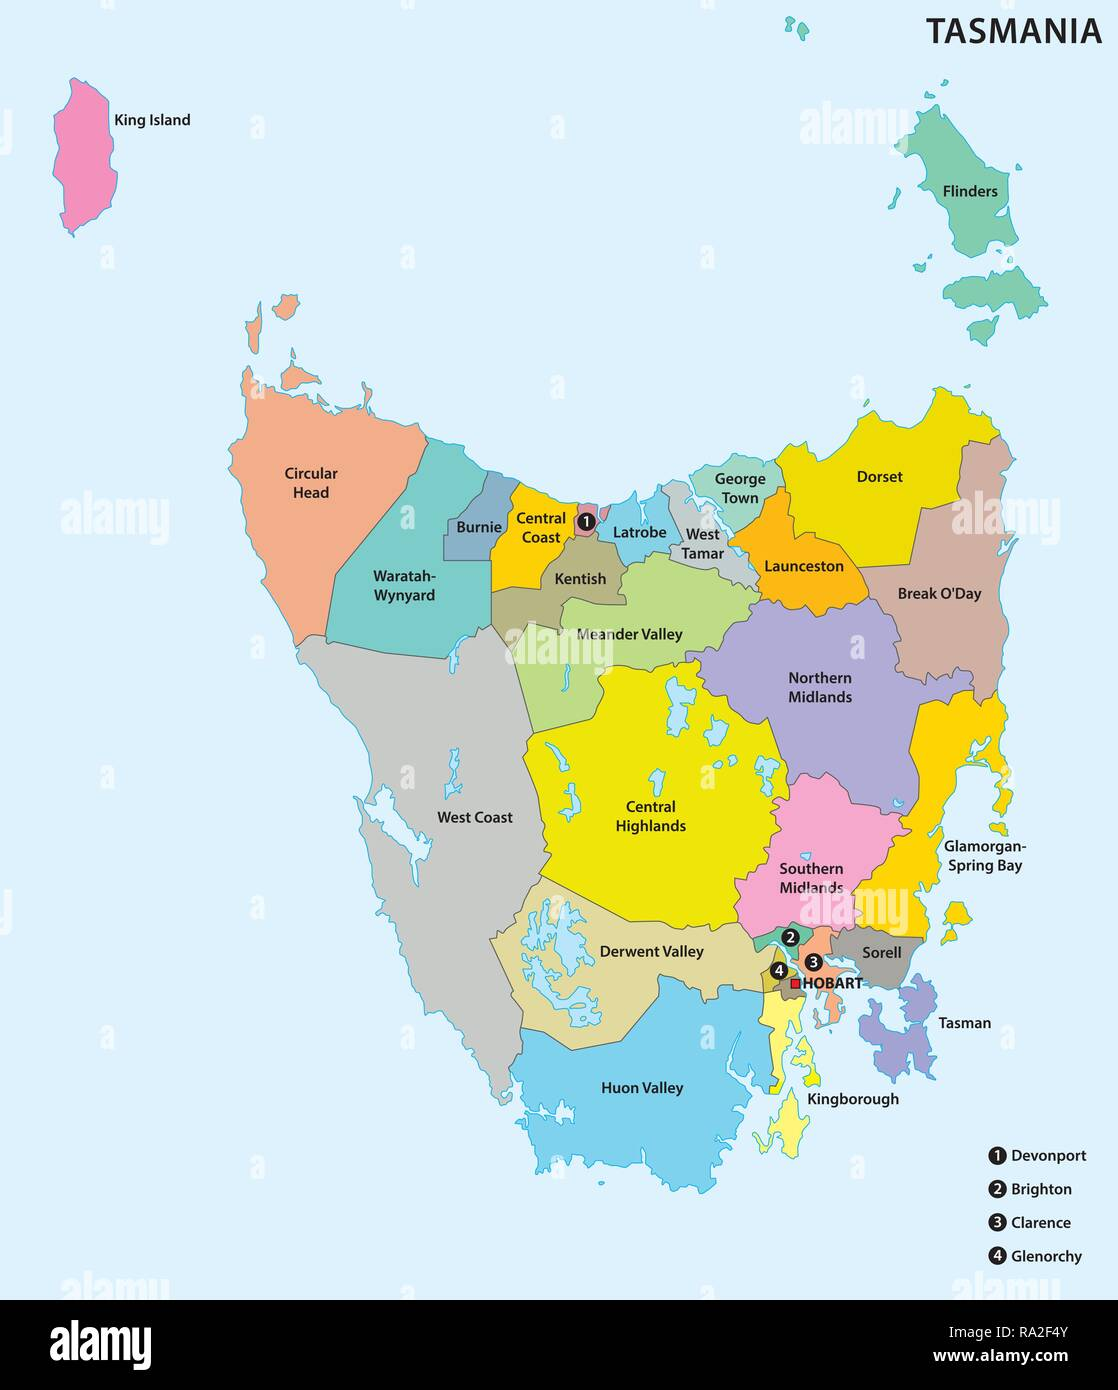 Administrative and political map of the 29 Local government areas of Tasmania, Australia - Stock Image